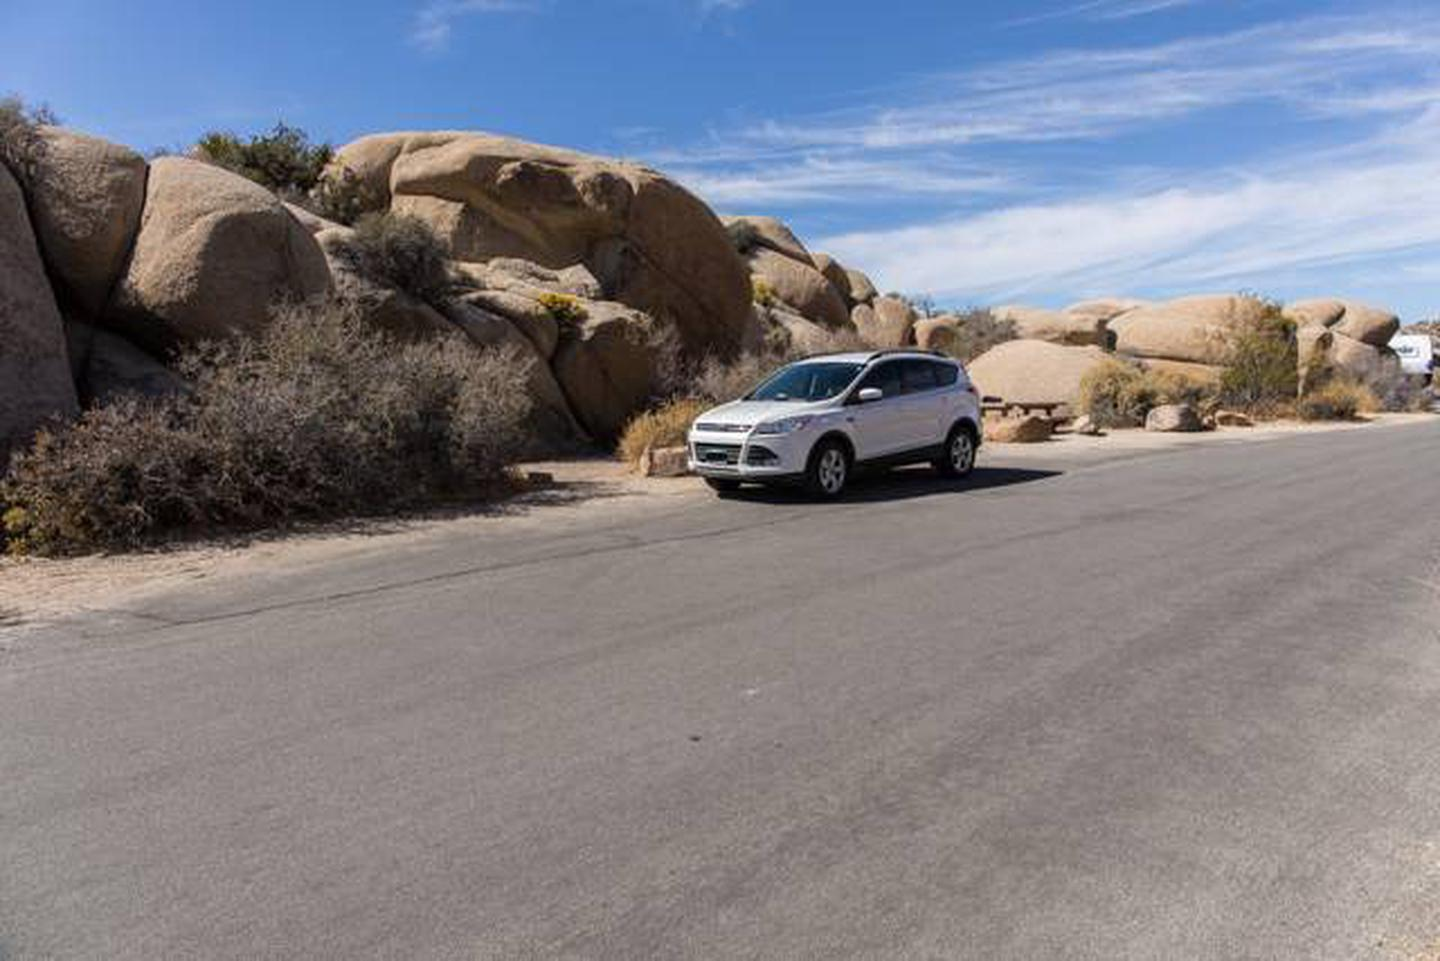 Jumbo Rocks site 91Parking space for campsite